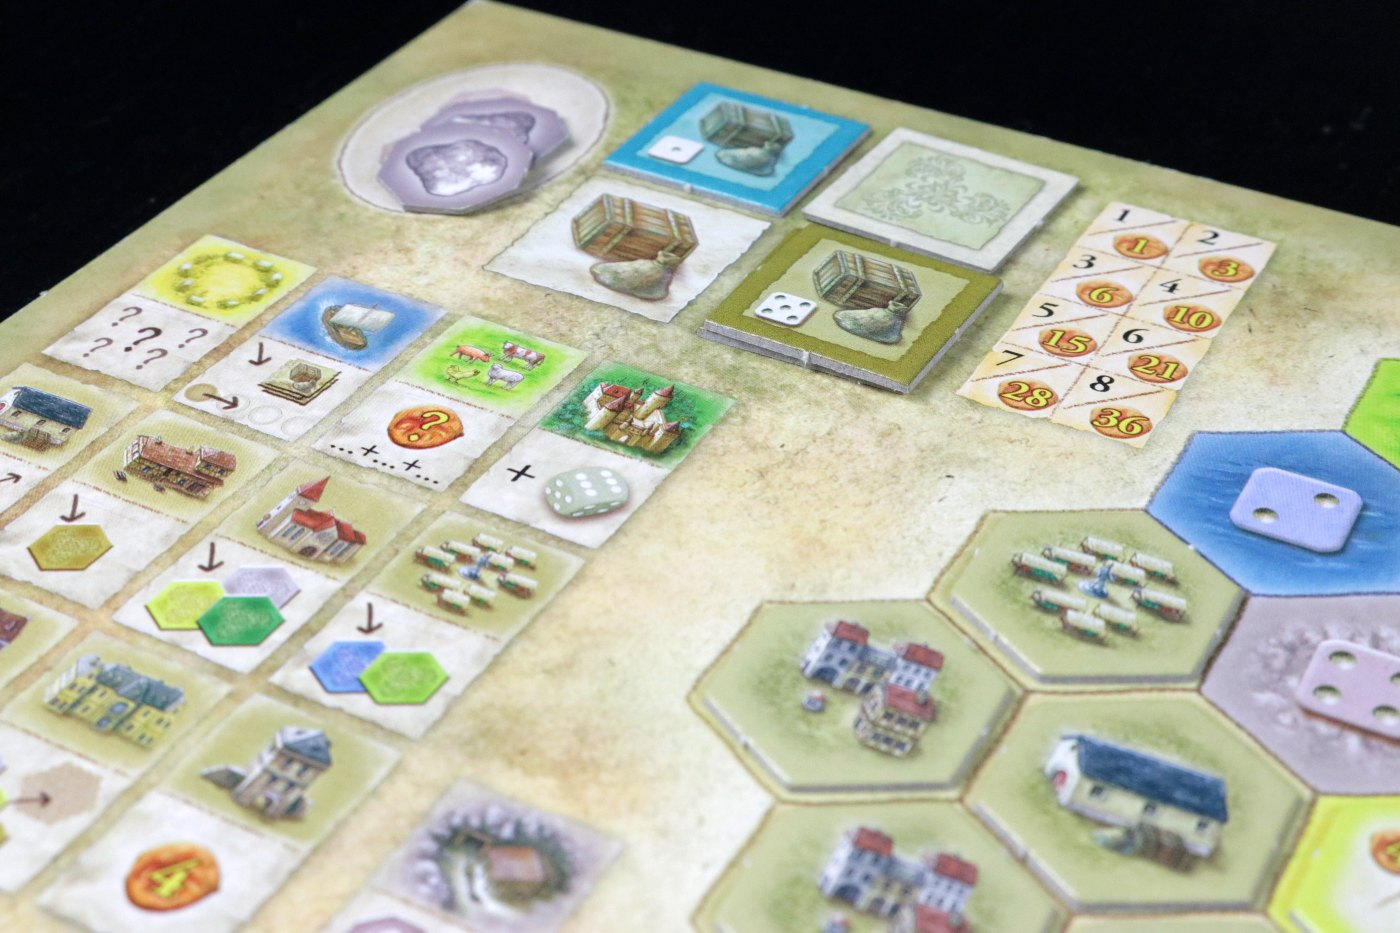 Castles of Burgundy shipping